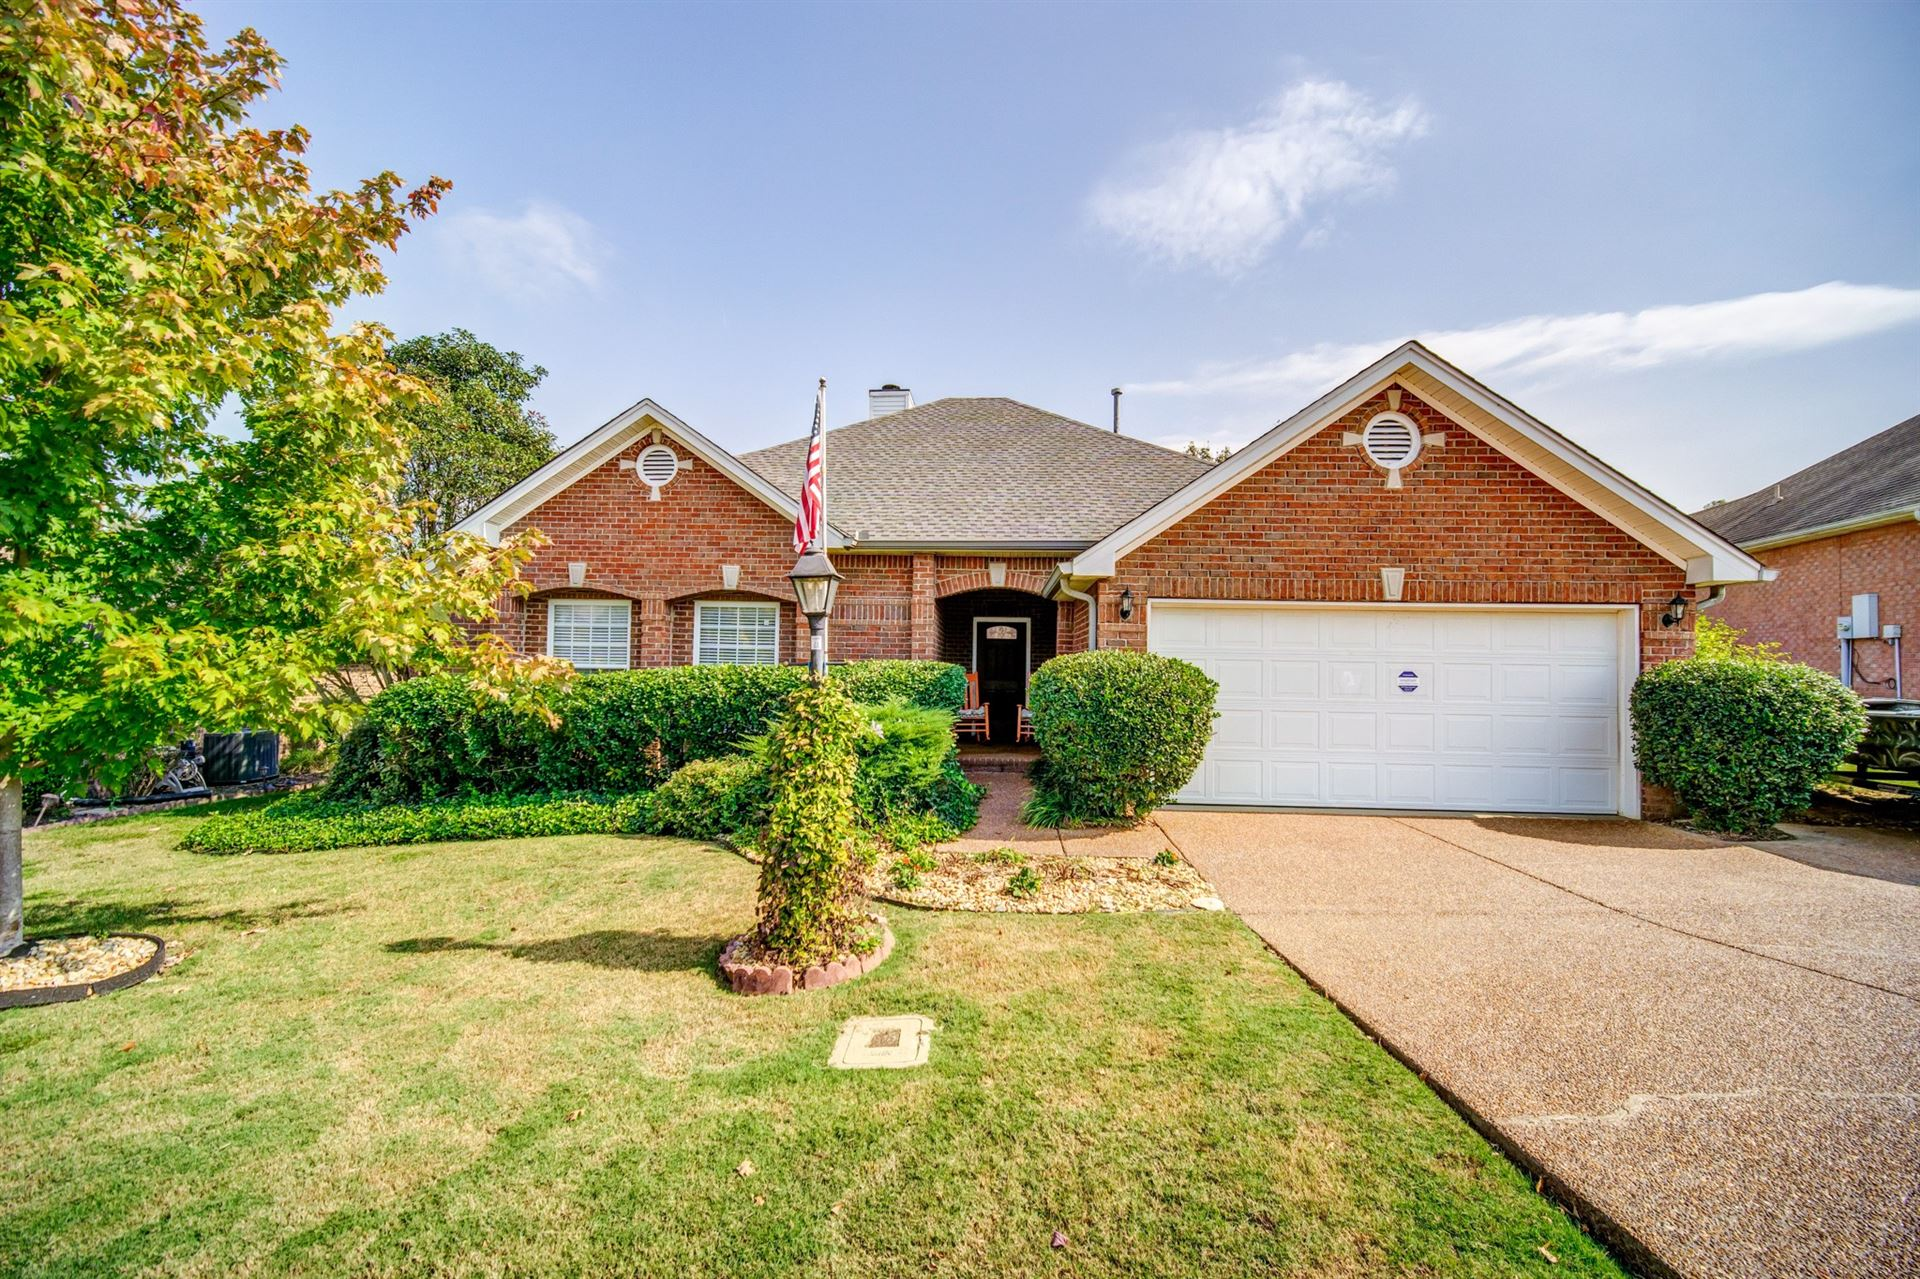 308 Moonwater Ct, Hermitage, TN 37076 - MLS#: 2199930